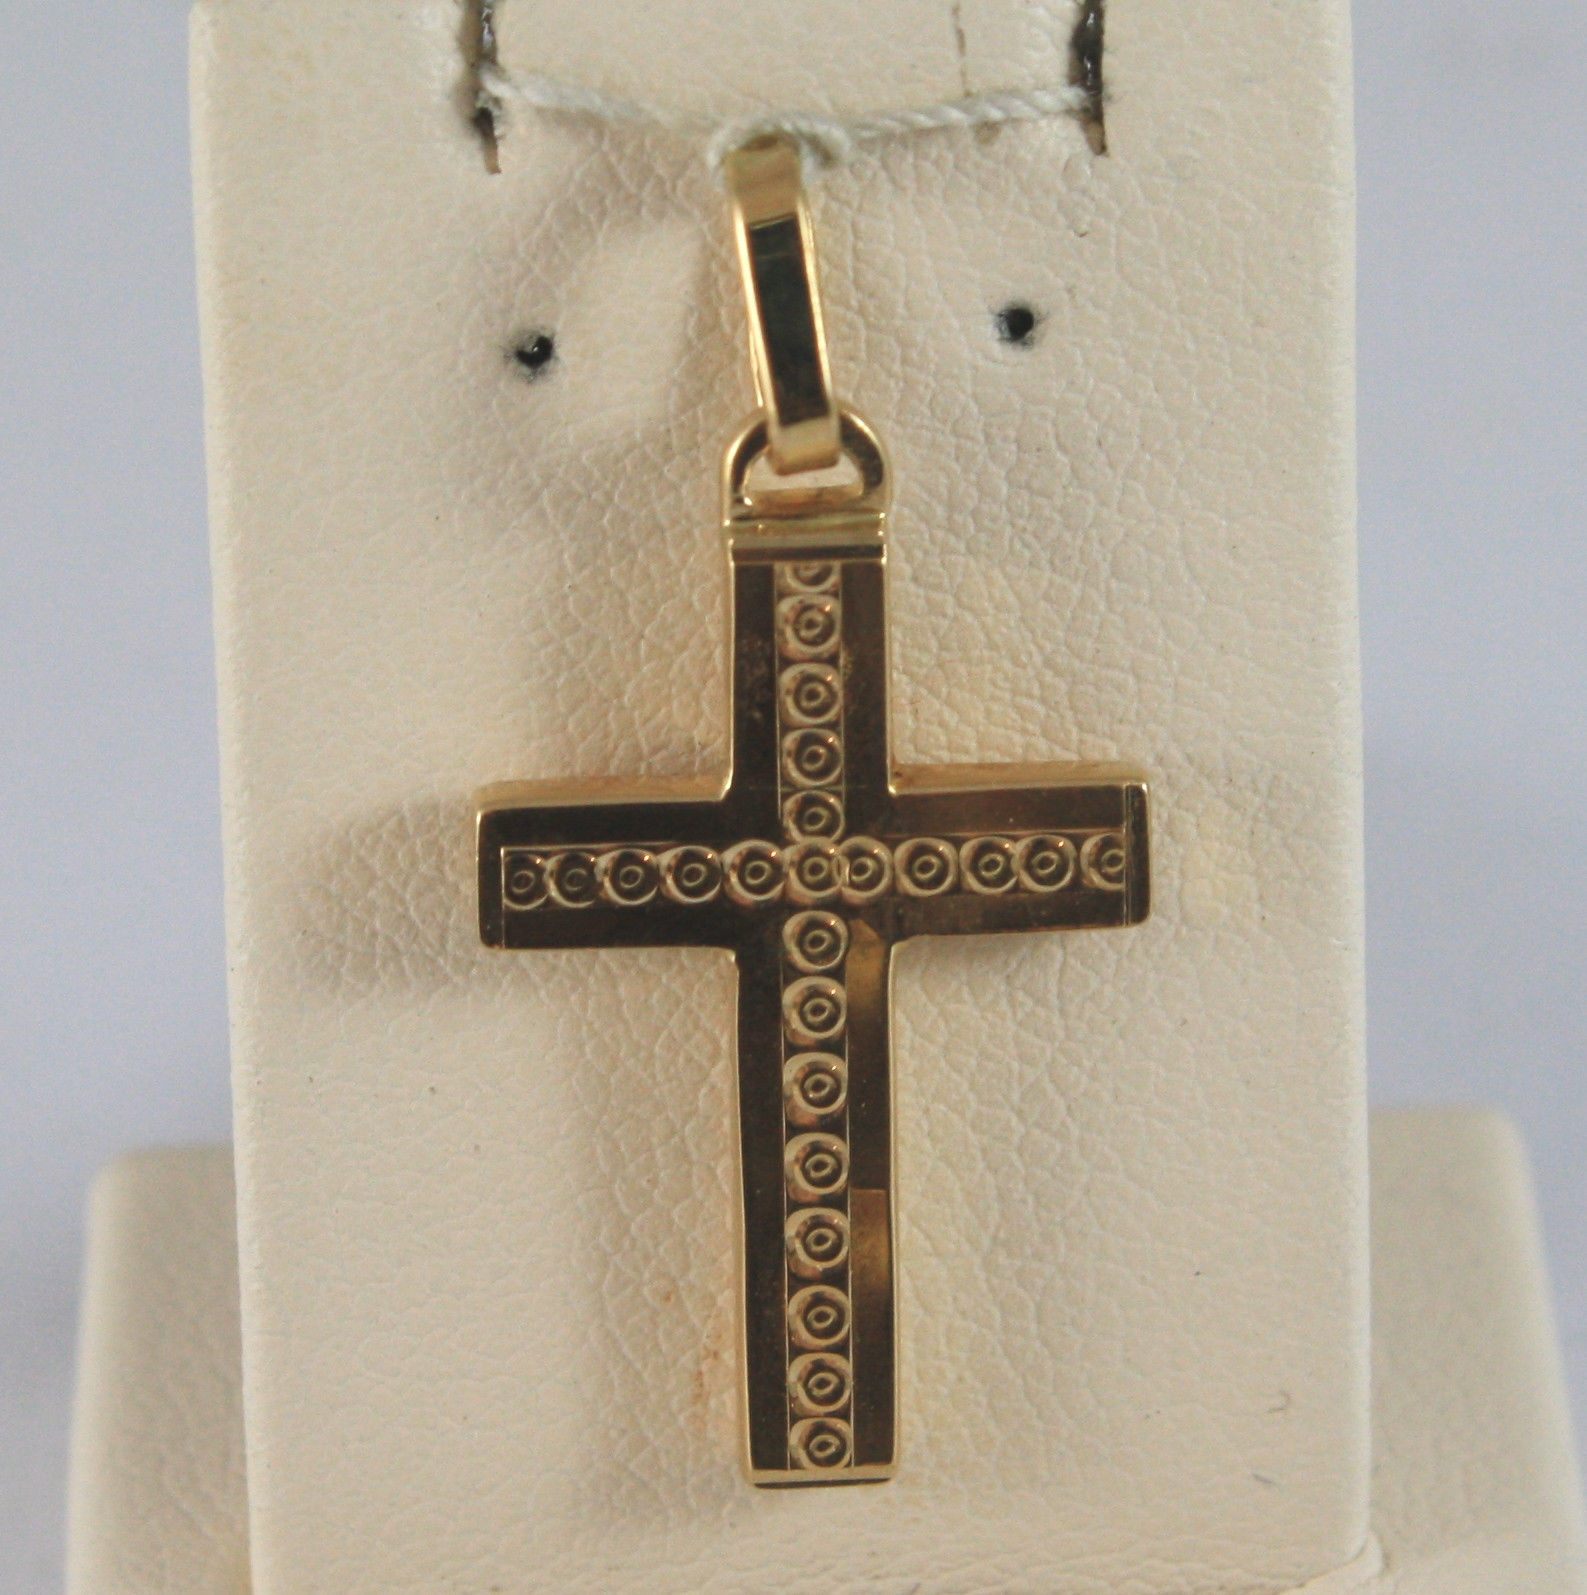 SOLID 18K YELLOW GOLD, WORKED CROSS PENDANT LENGTH 1,1 IN, MADE IN ITALY